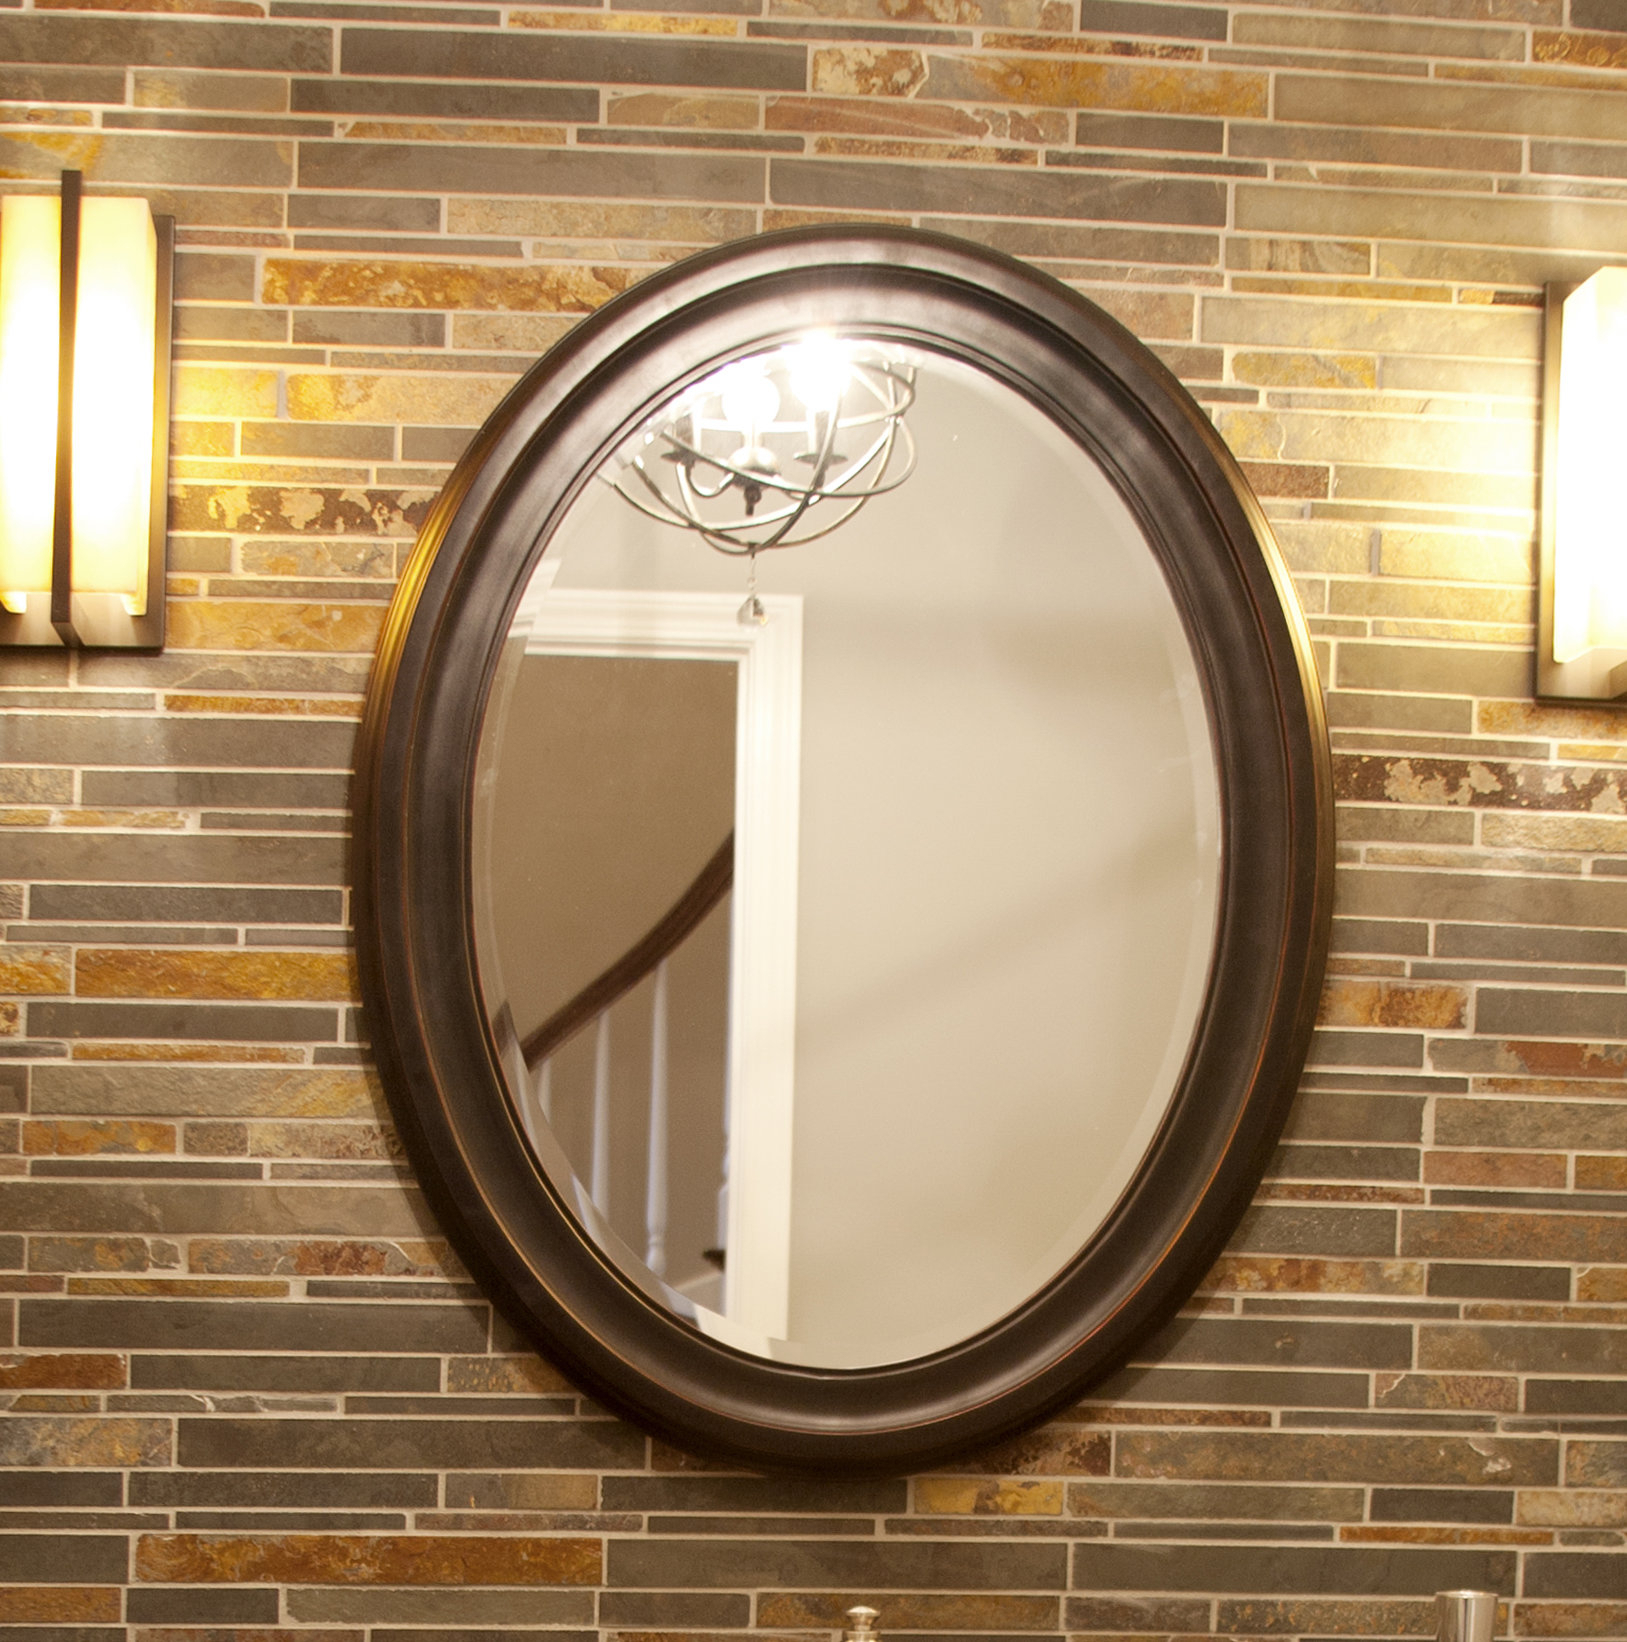 Pfister Oval Wood Wall Mirror With Oval Wood Wall Mirrors (View 3 of 20)